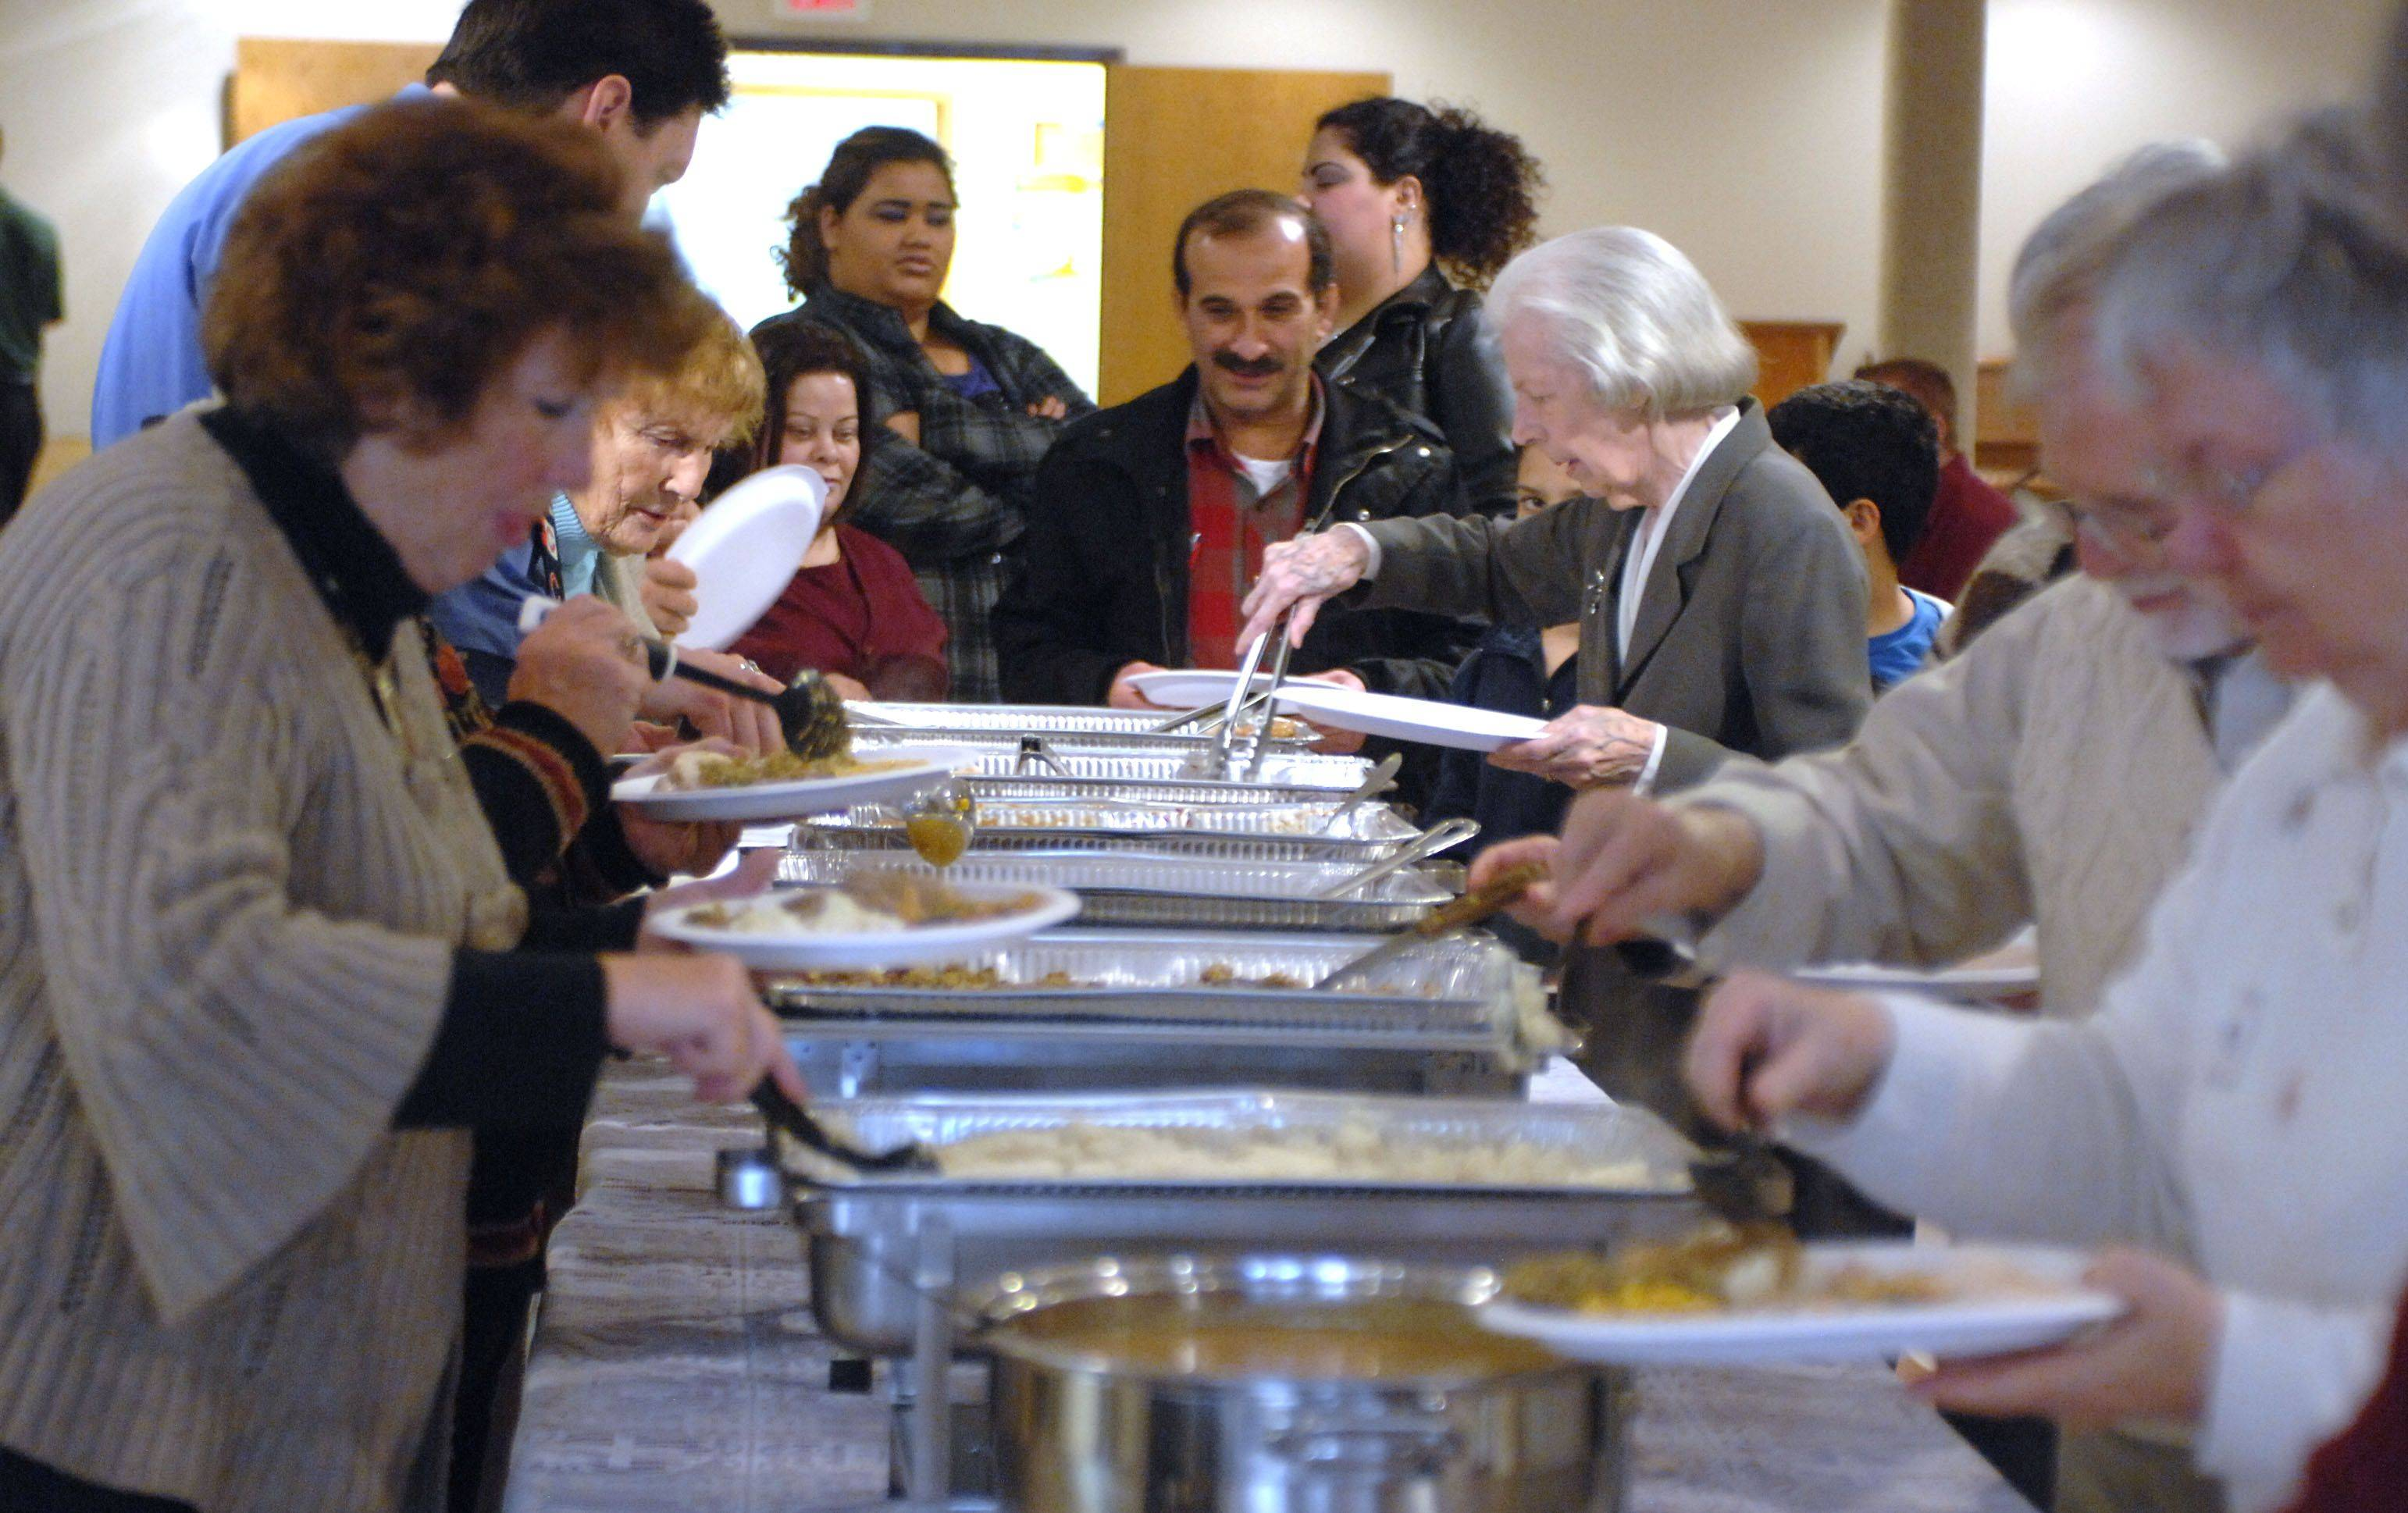 St. Matthew Lutheran Church in Hawthorn Woods held their annual Thanksgiving meal Thursday.